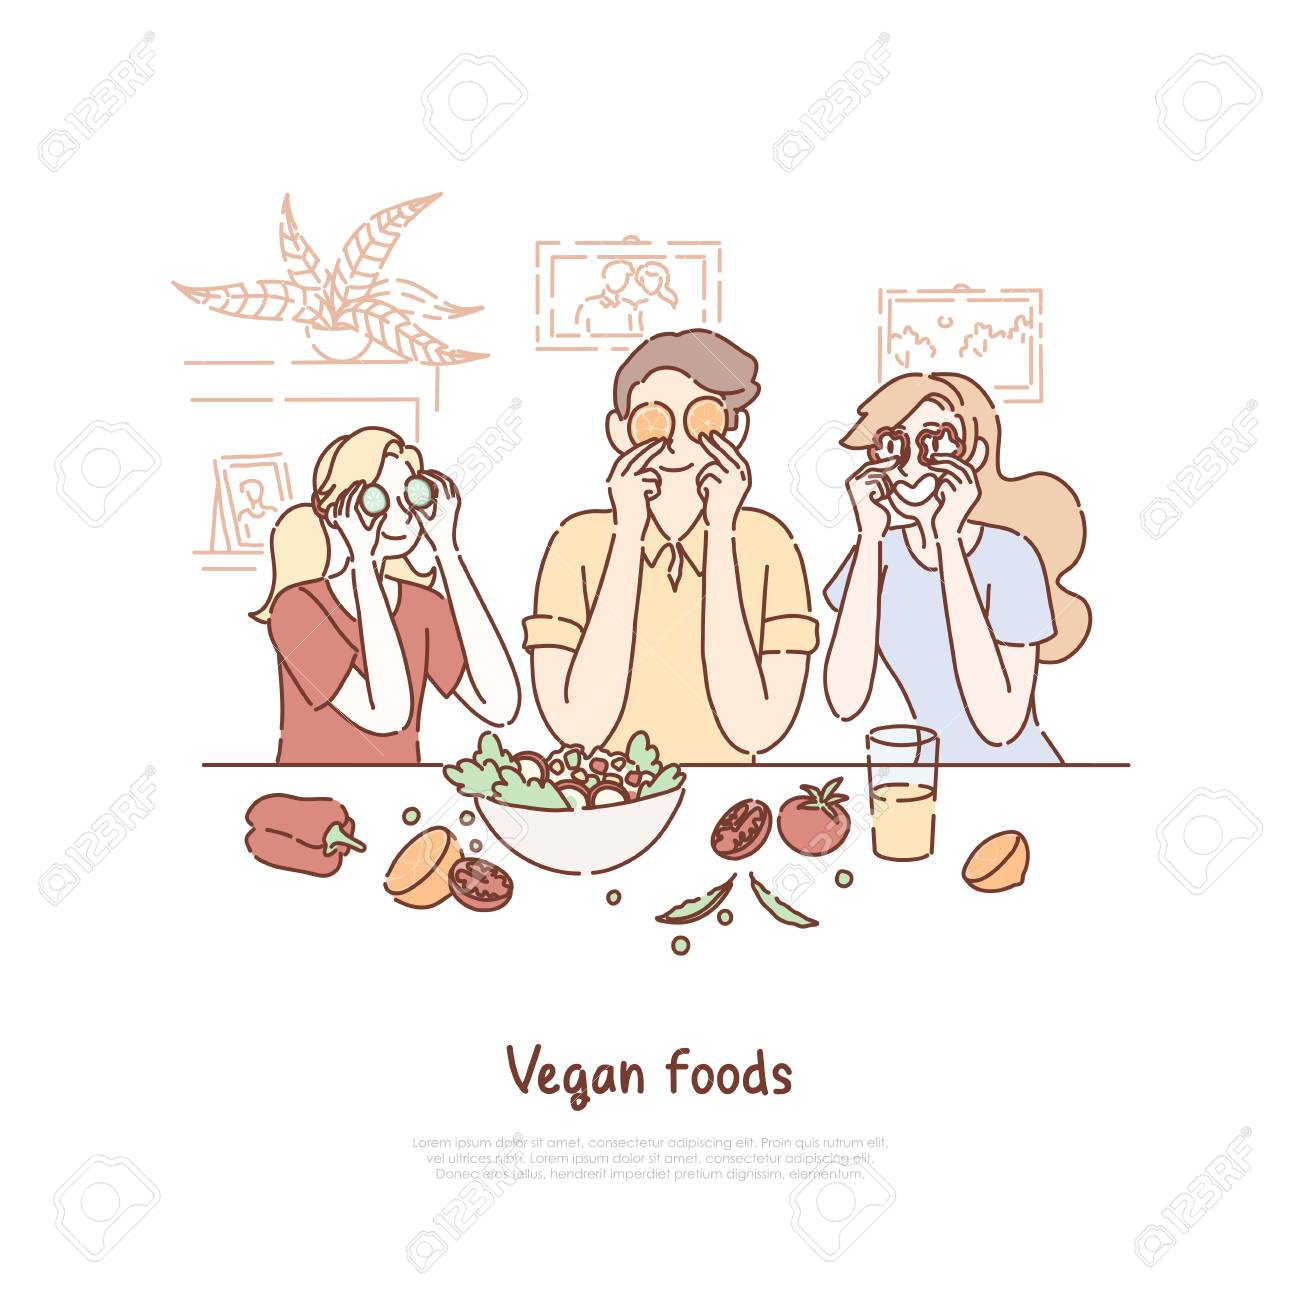 Family Eating Vegan Food Healthy Lifestyle Vegetarians Cooking Royalty Free Cliparts Vectors And Stock Illustration Image 127123093